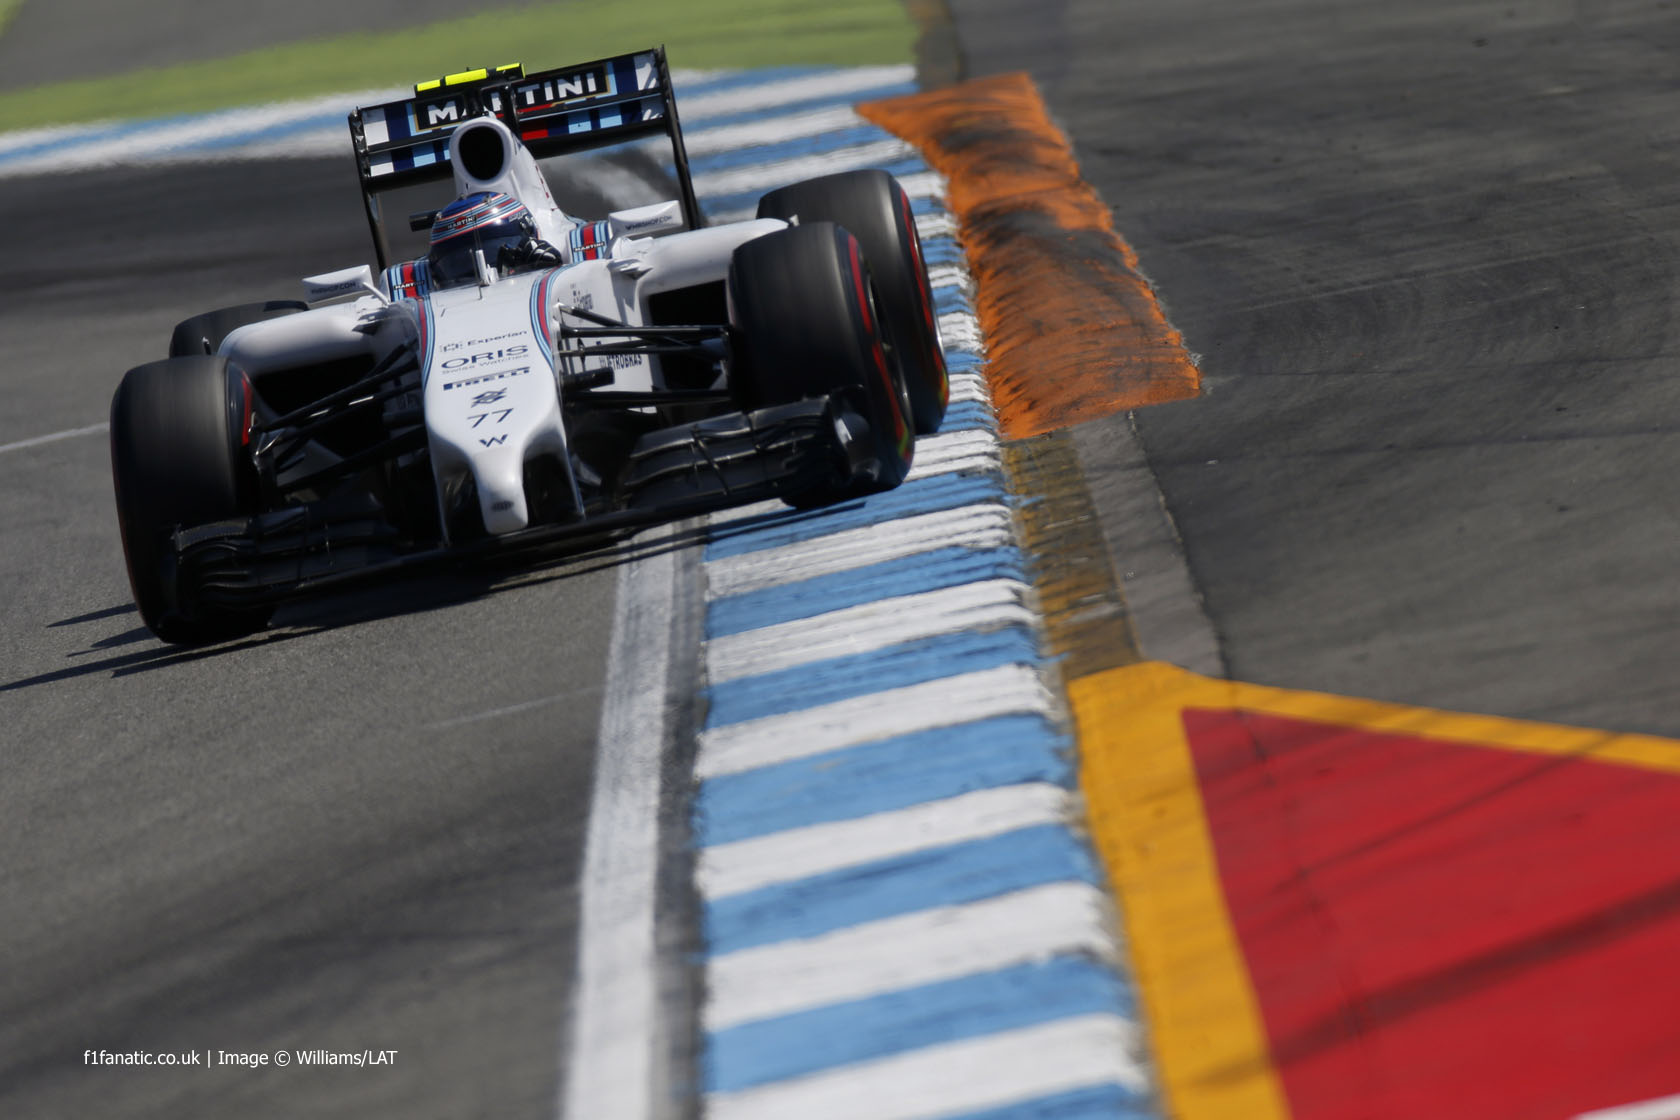 Valtteri Bottas, Williams, Hockenheimring, 2014